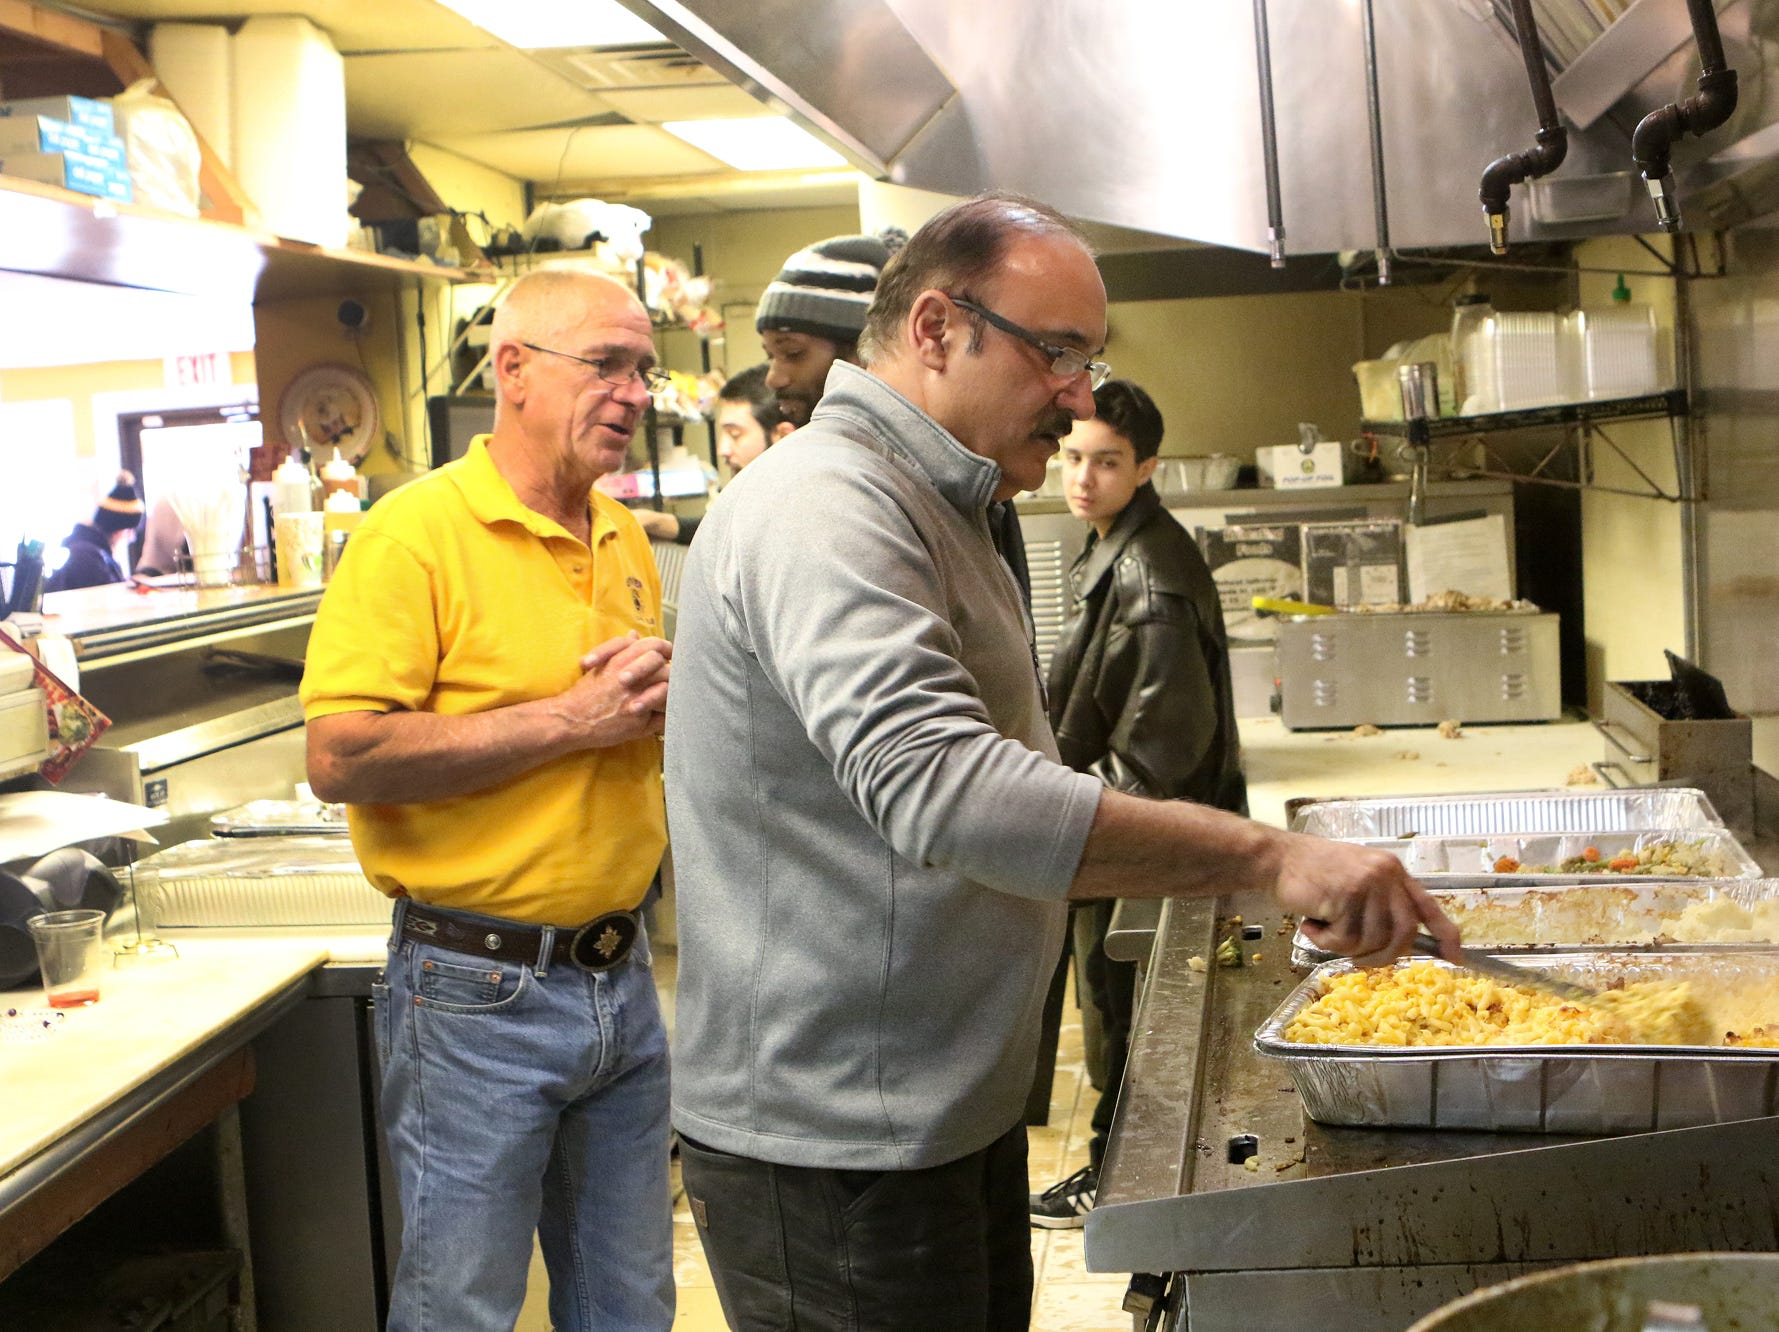 Simaron Pizza & Steak Shop owner Edmound Yousef Khanian adds gravy to a dinner-to-go Thursday while Jerry Lawrence from the Dover Lions Club looks on. Khanian opened up his Dover restaurant on Thanksgiving Day to feed those who couldn't afford dinner or who were alone on the holiday.